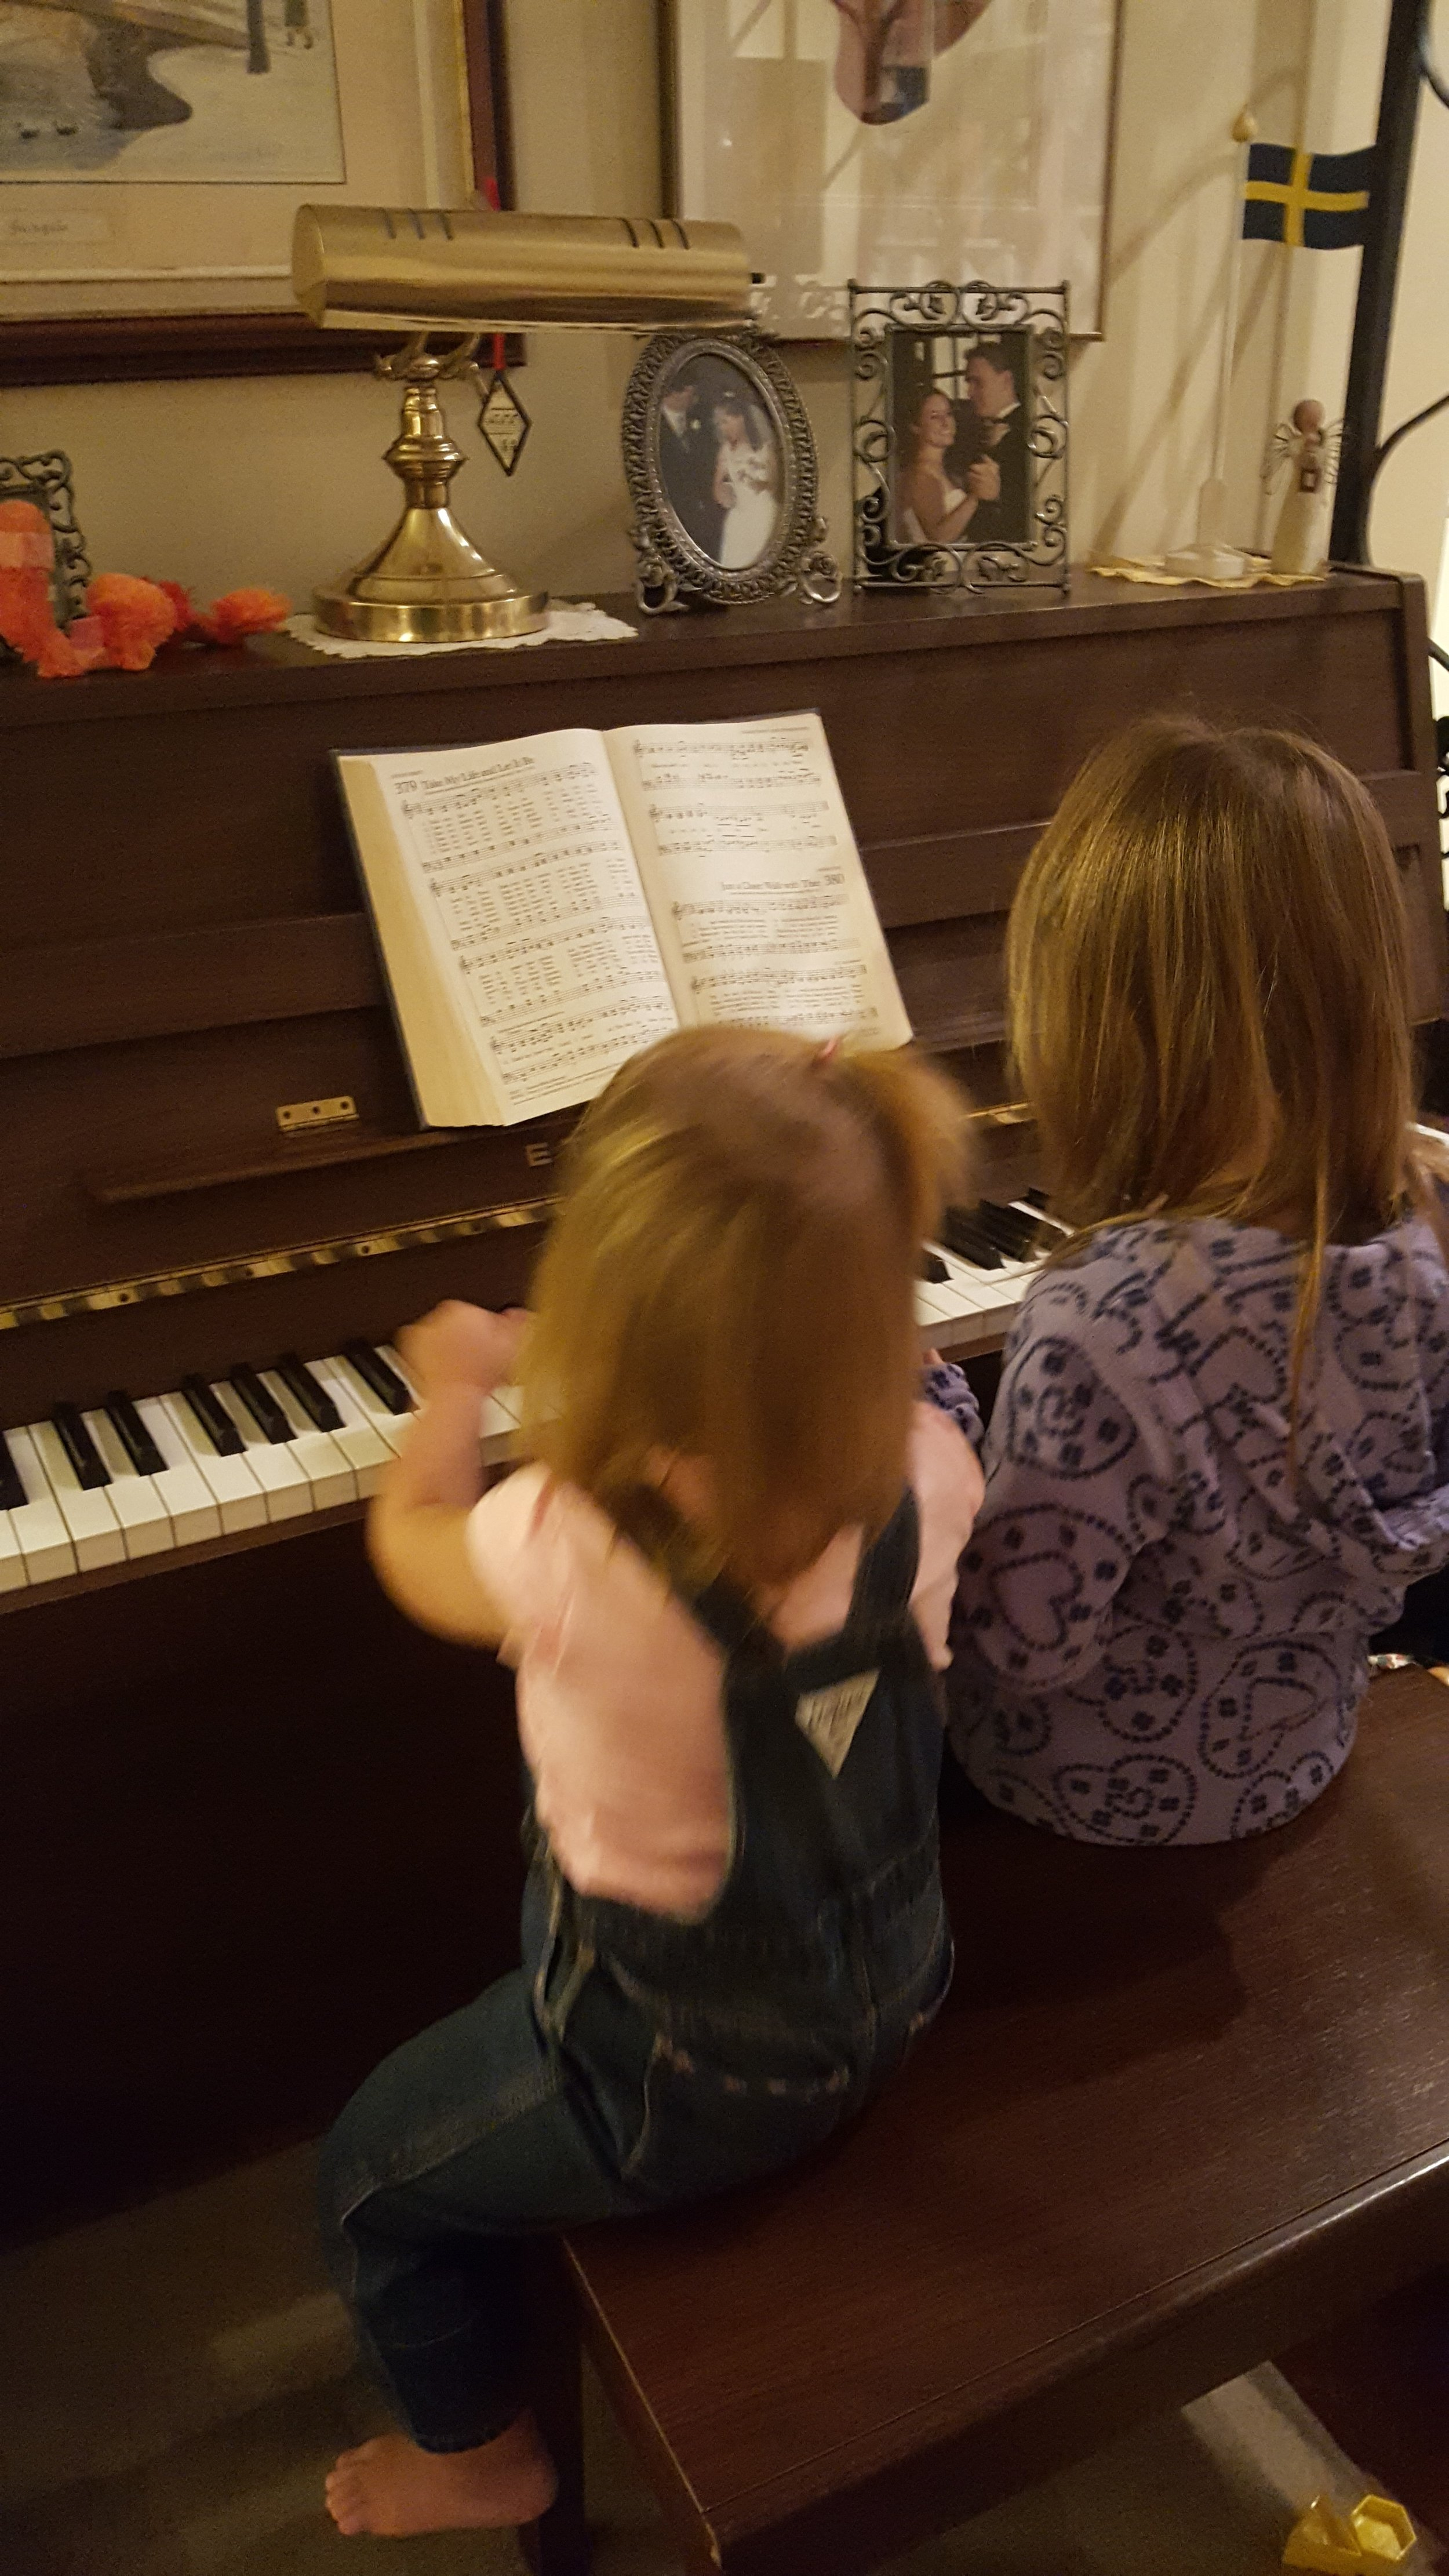 Two of my granddaughters making beautiful music!